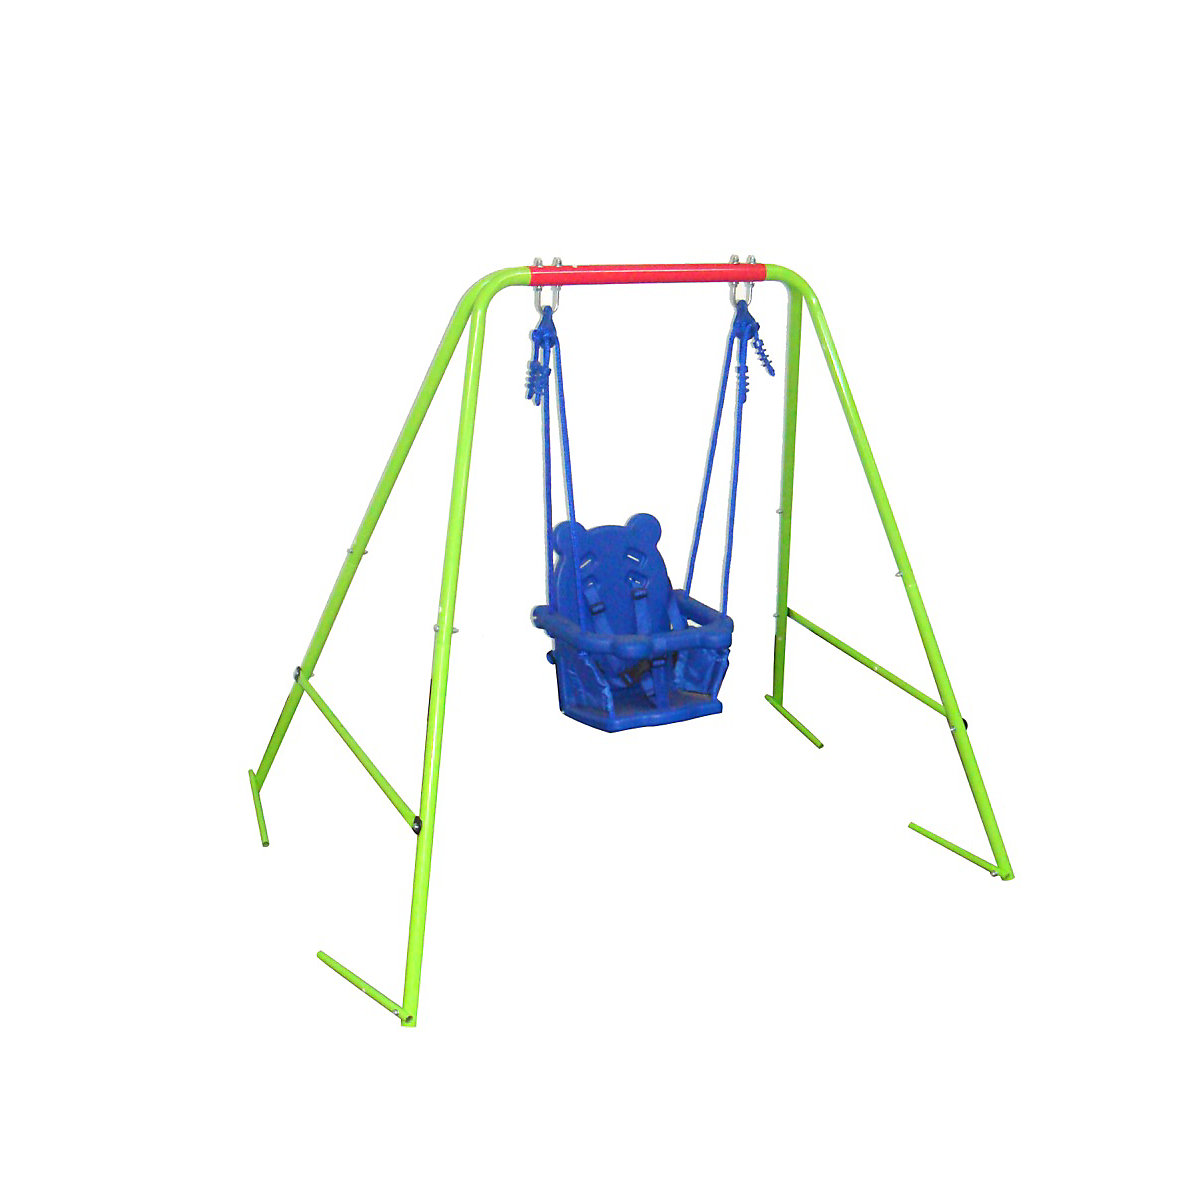 2 In 1 Swing Toy From 9 Months